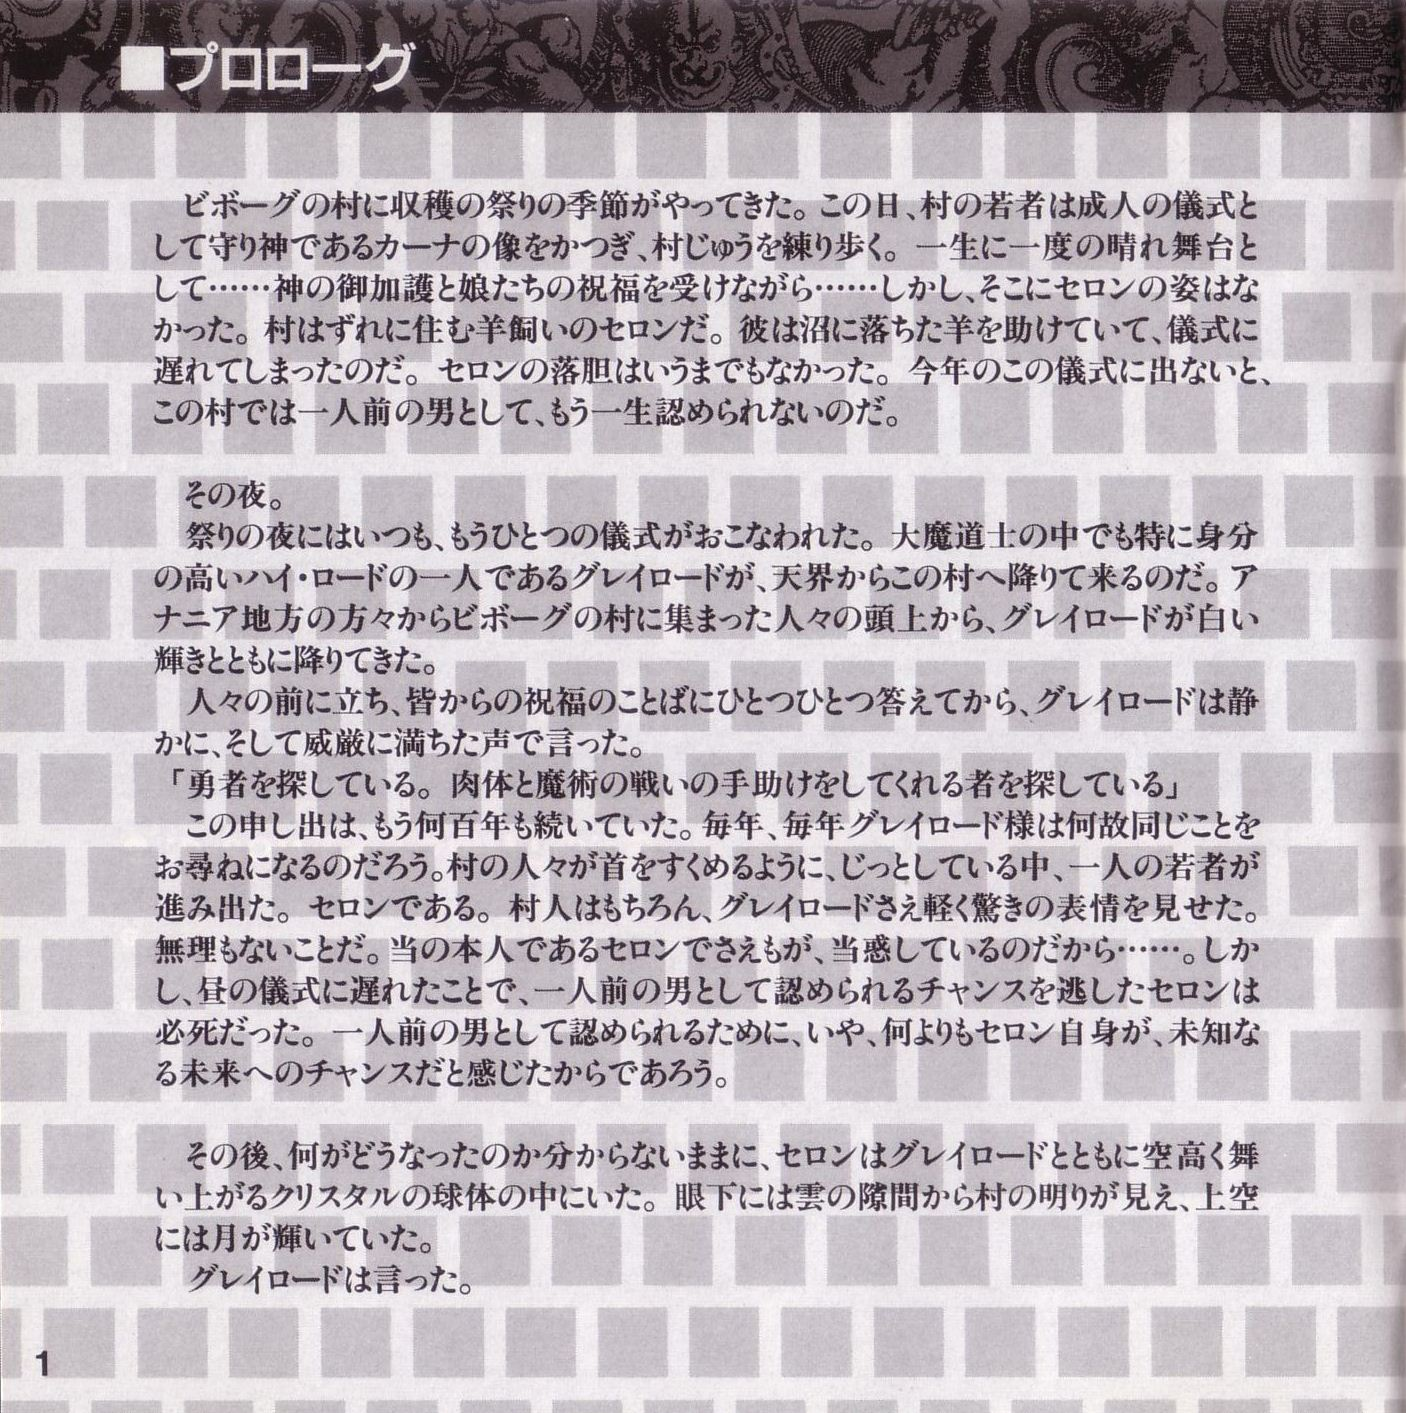 Game - Theron's Quest - JP - PC Engine - Booklet - Page 004 - Scan